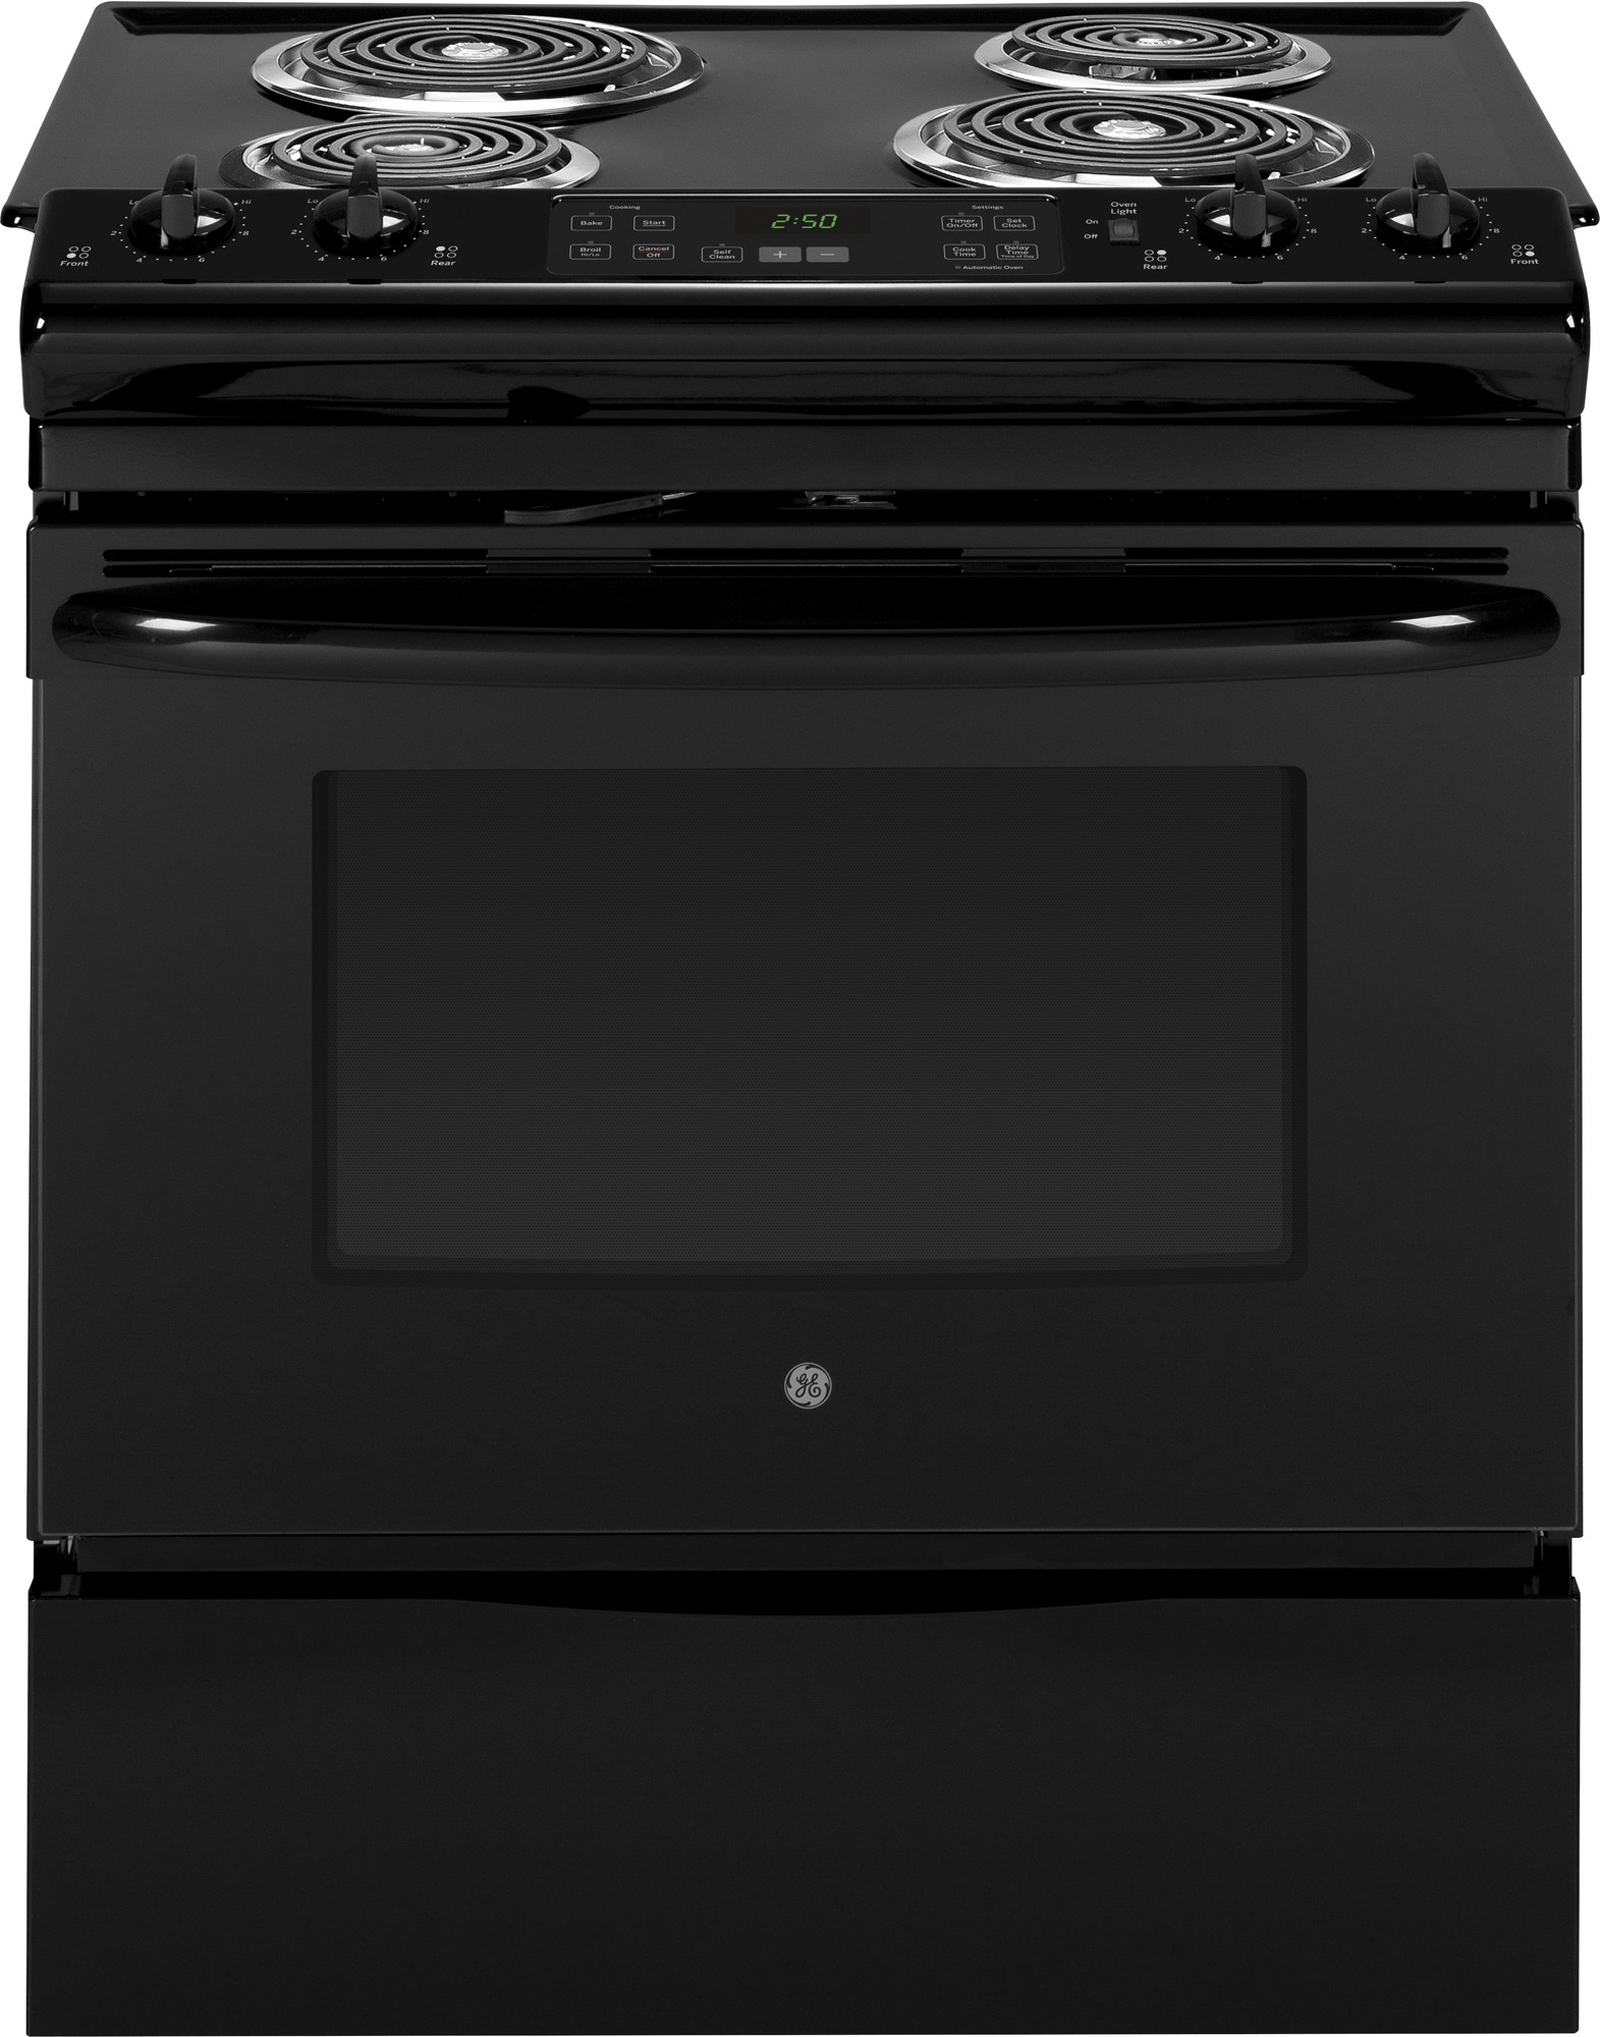 GE Appliances 30 Slide-In Electric Range - Black